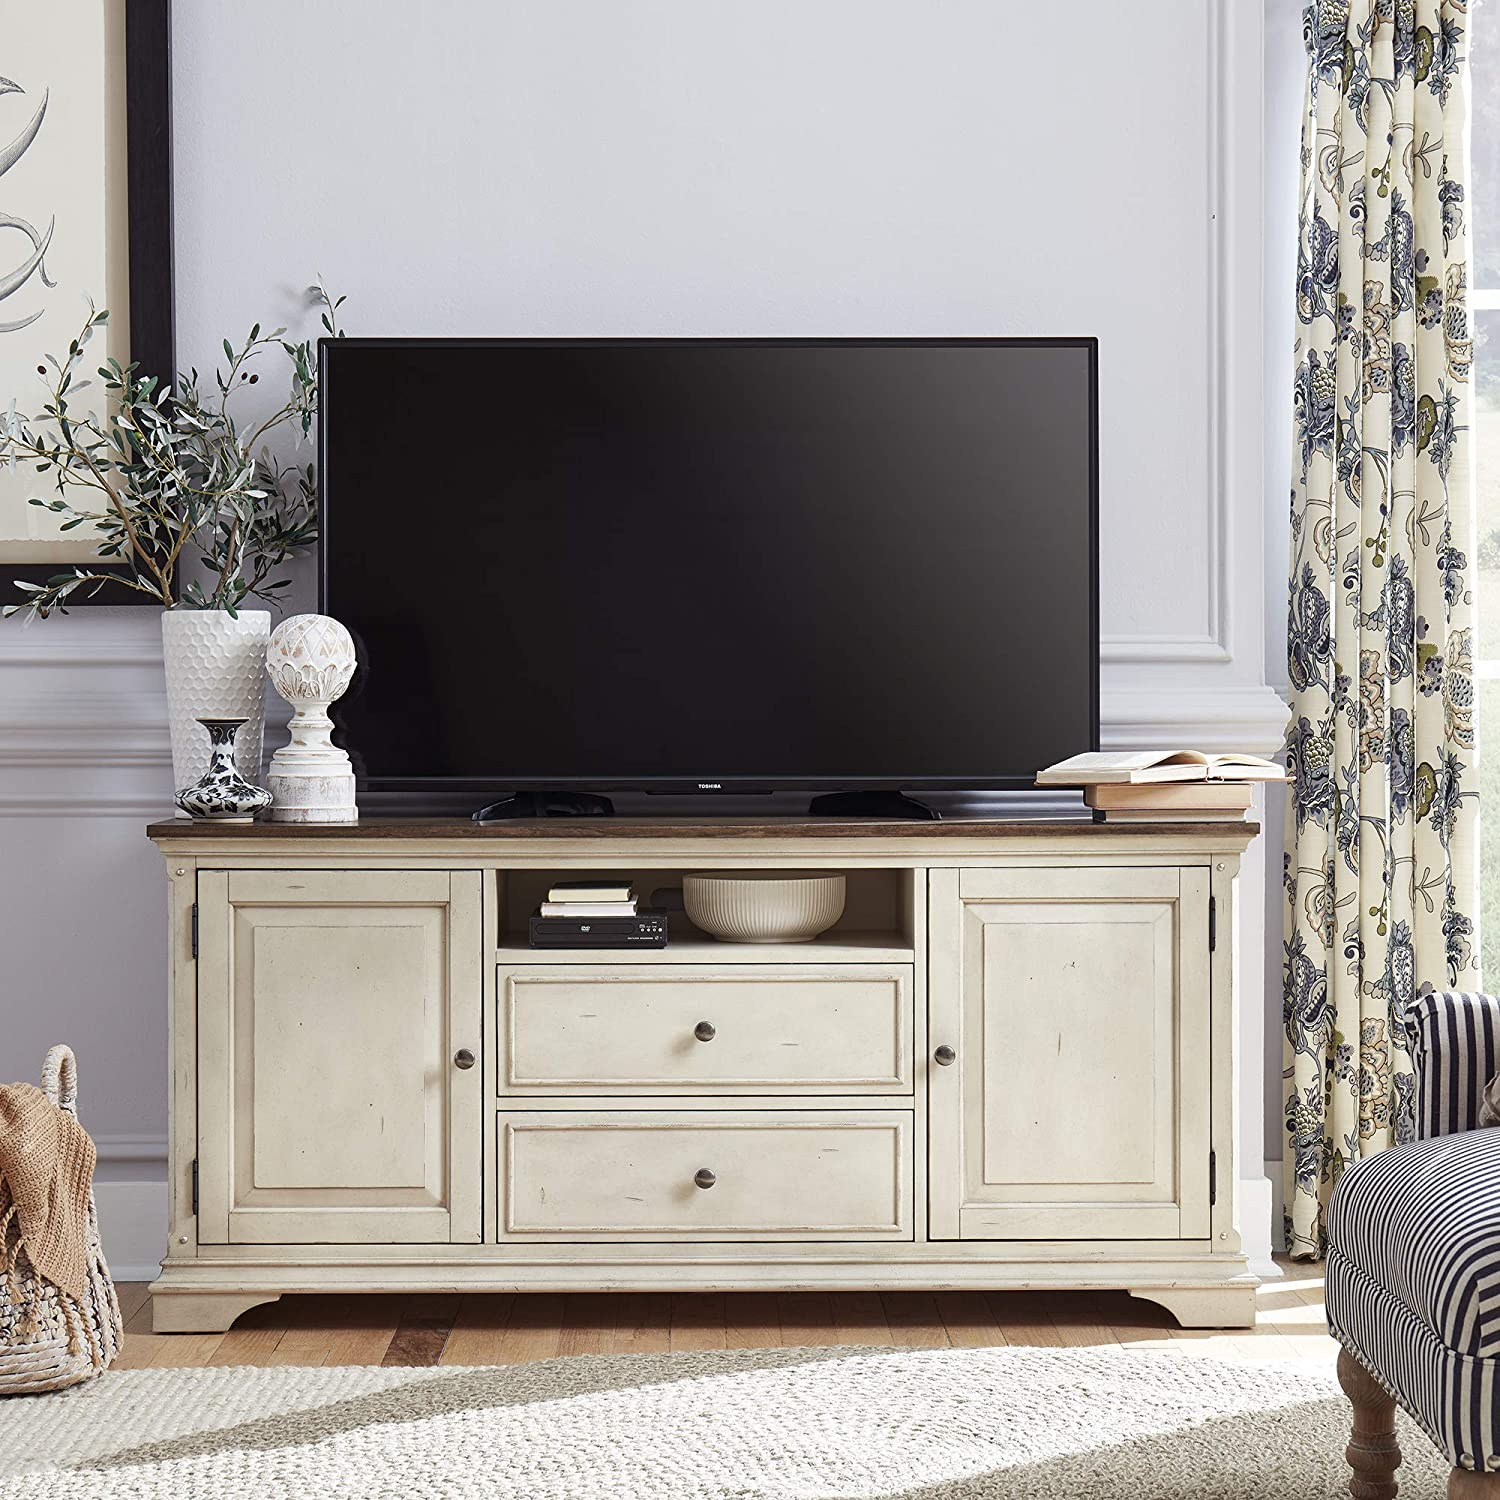 Liberty Furniture Industries Morgan Creek TV Console, Antique White